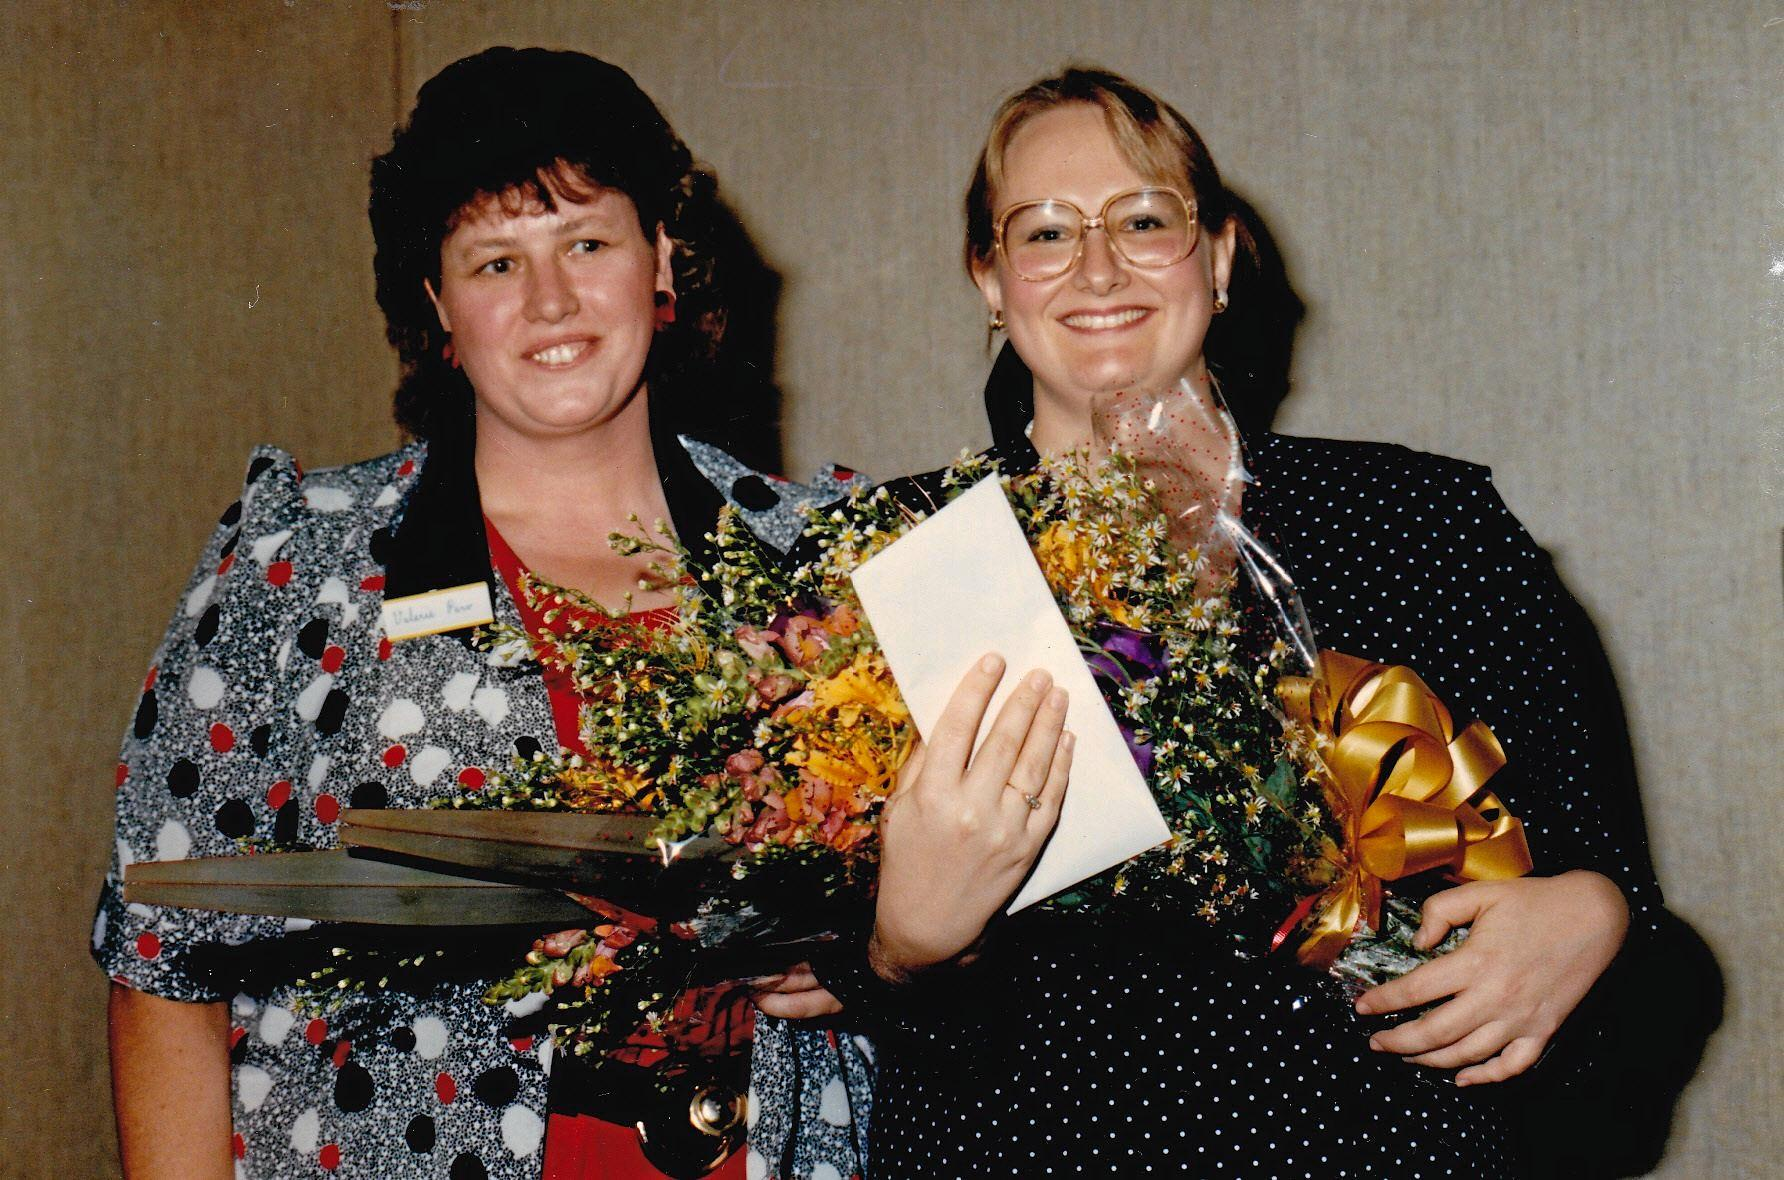 With romance legend Valerie Parv, winning a Prize in a Woman's Day short story contest in 1989.